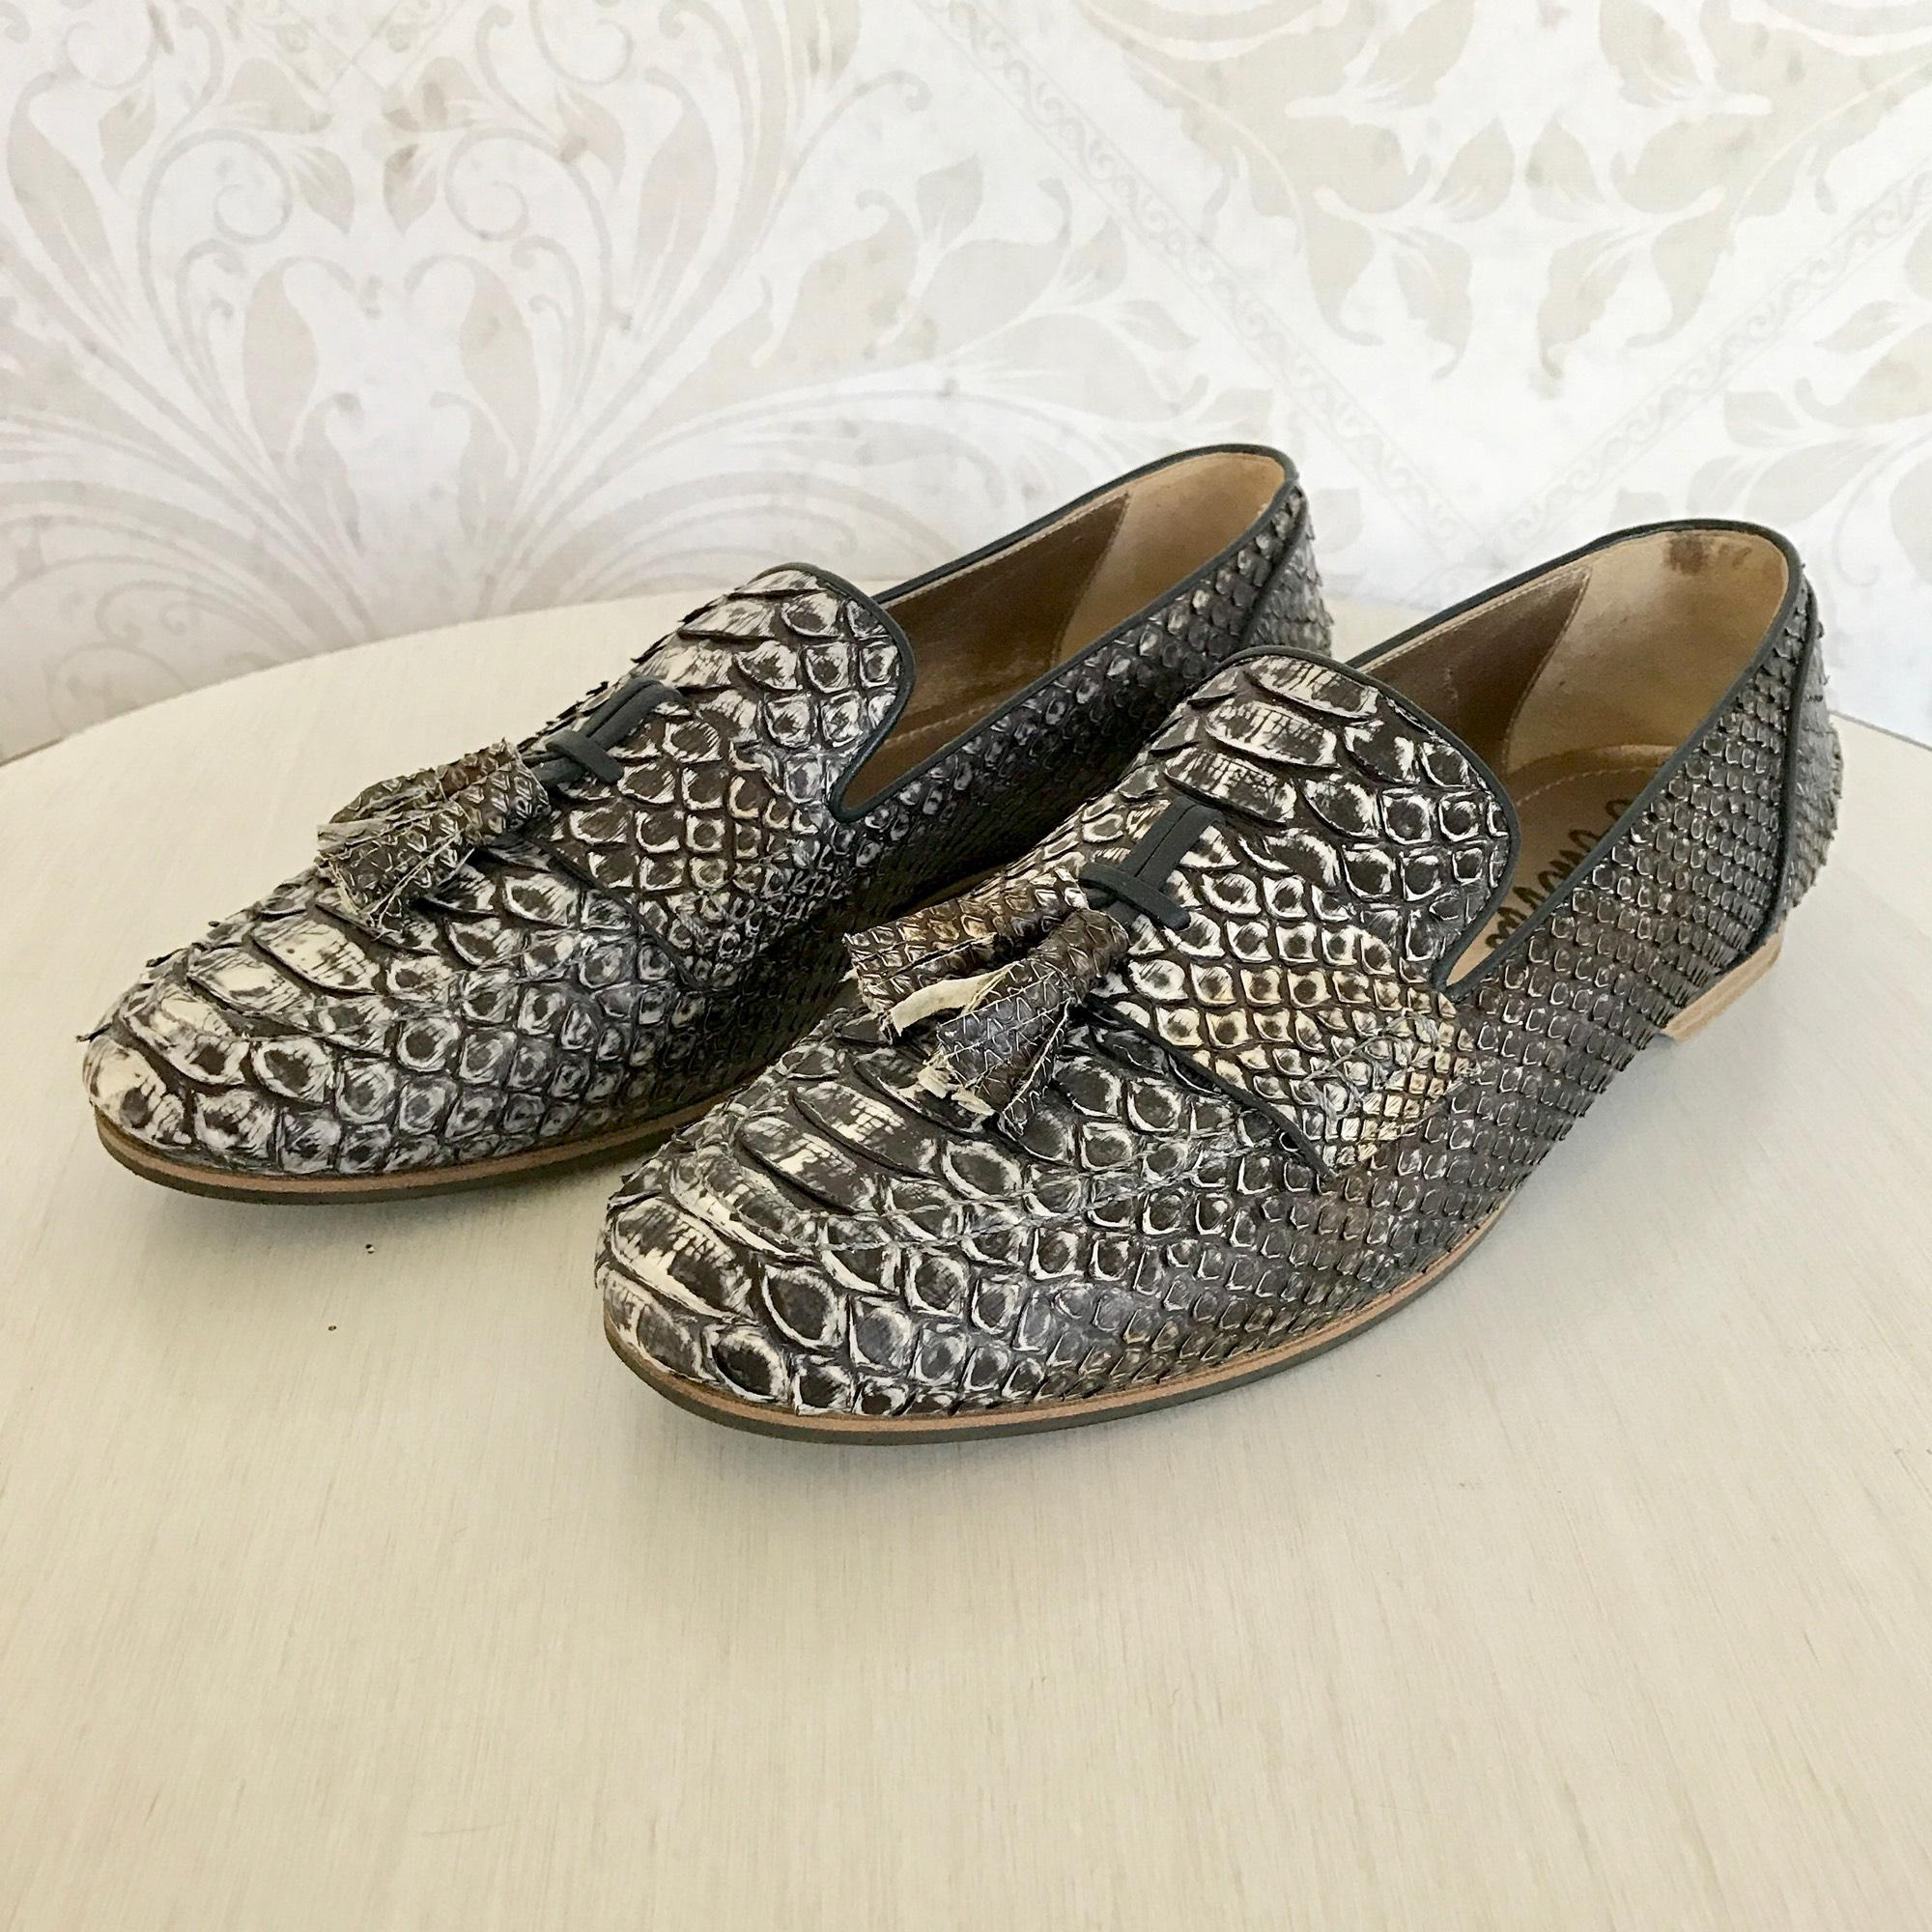 Lanvin Snakeskin Tassel Flats discount with credit card deals online clearance store cheap online jxaVhJrvel